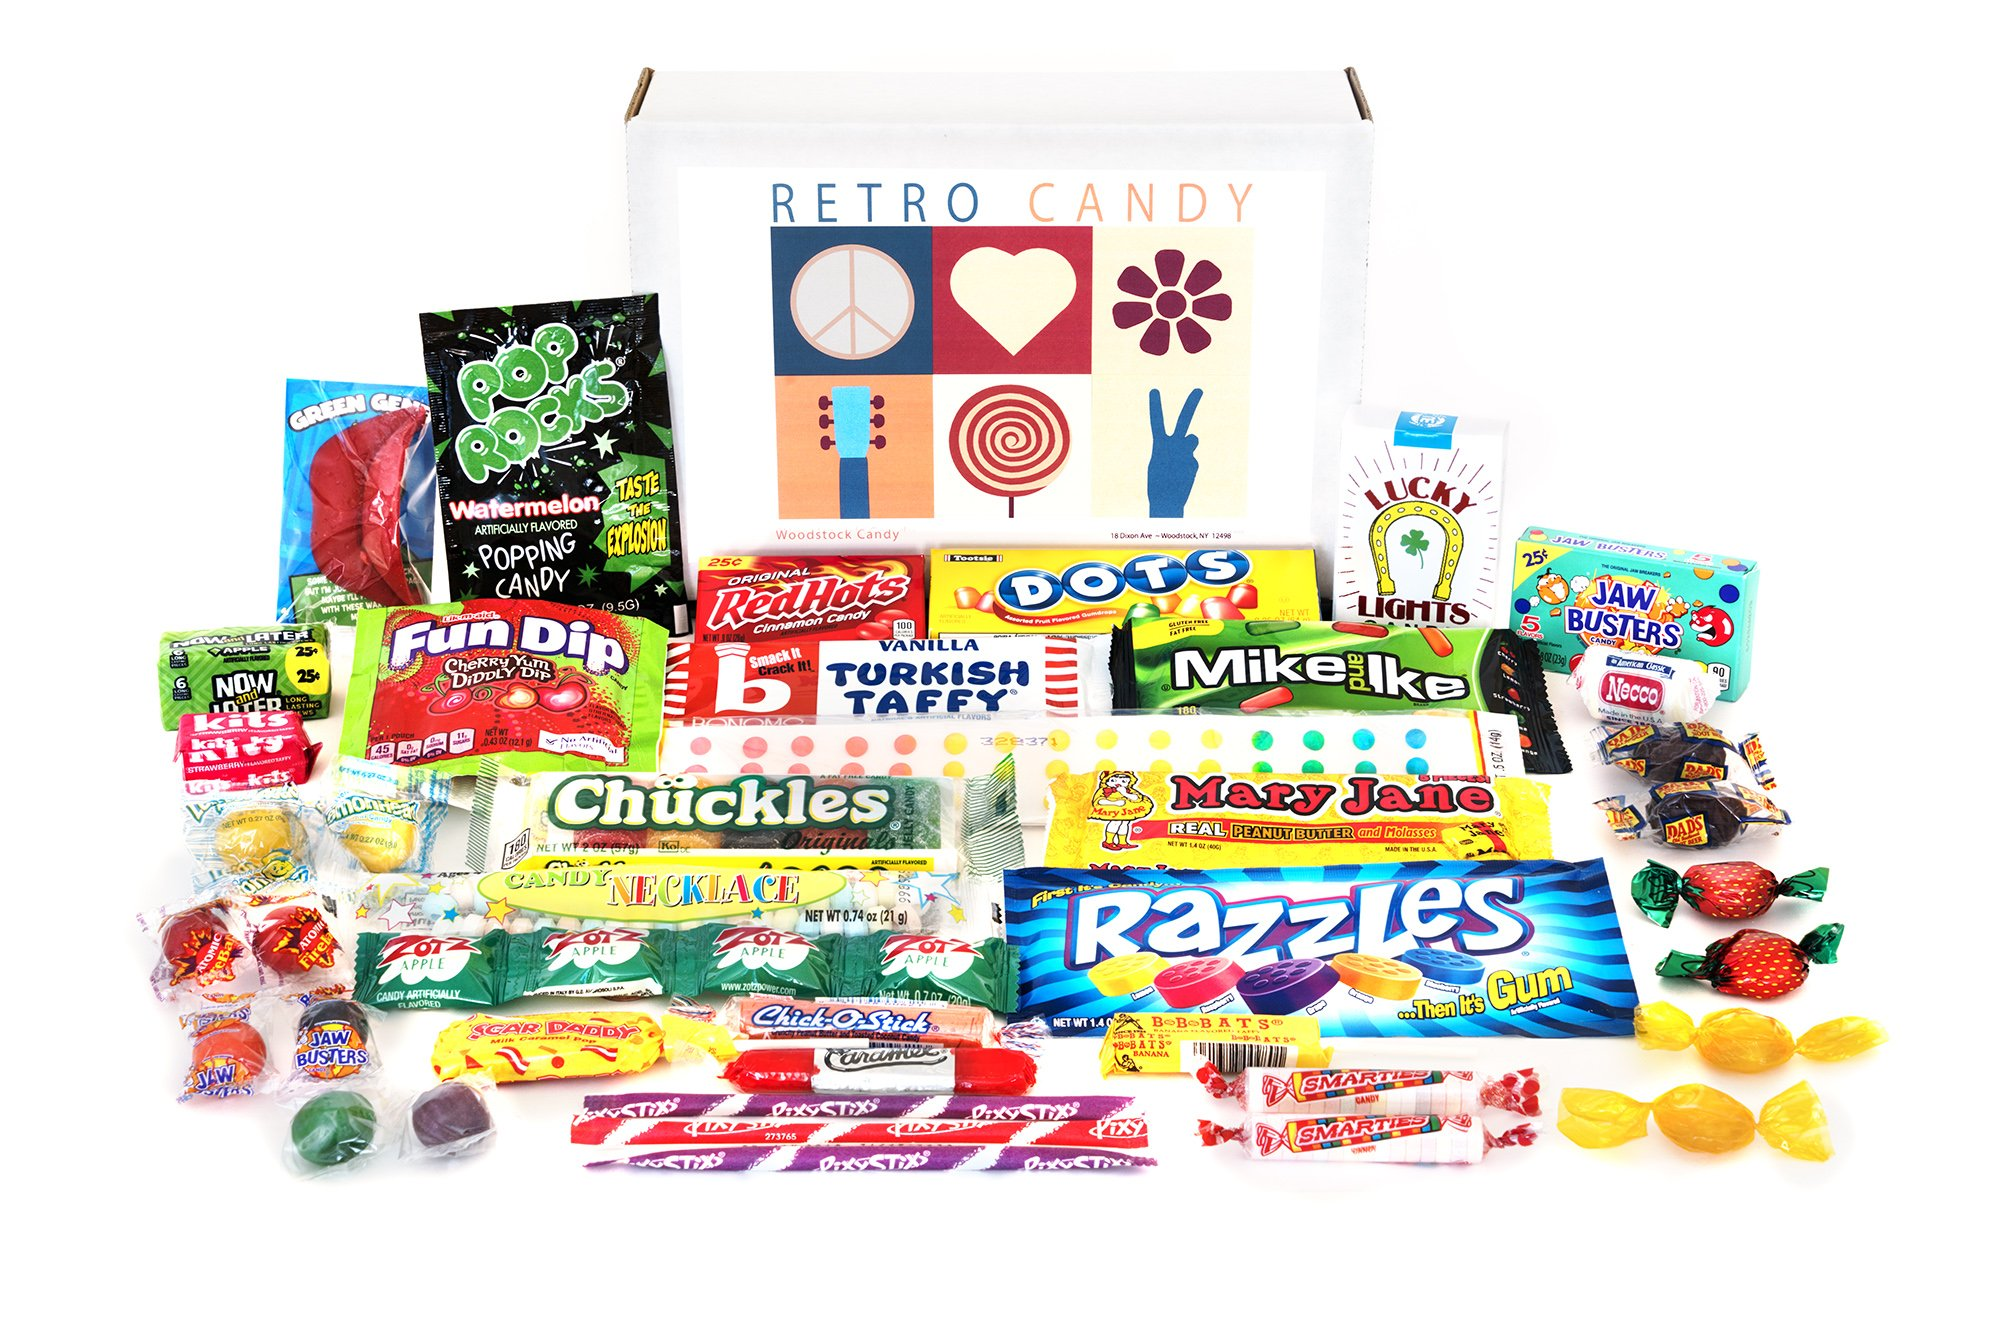 Woodstock Candy ~ Care Package Assortment Gift Box Retro Nostalgic Candy Mix from Childhood for Man or Woman Jr